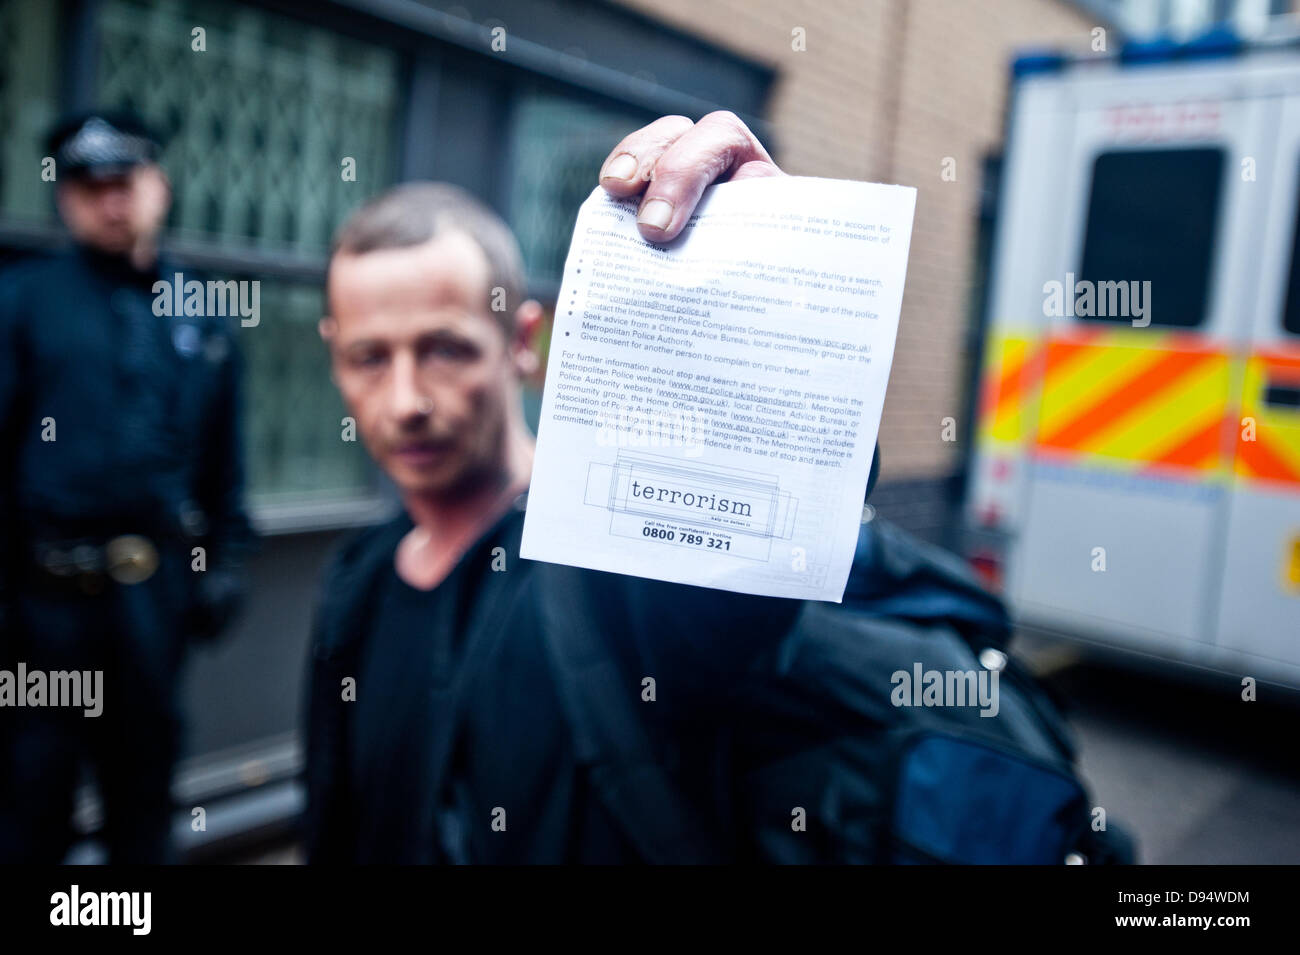 London, UK. 11th June 2013.  A Stop G8 protester holds a 'Stop and search' notice for terrorism after being evicted - Stock Image